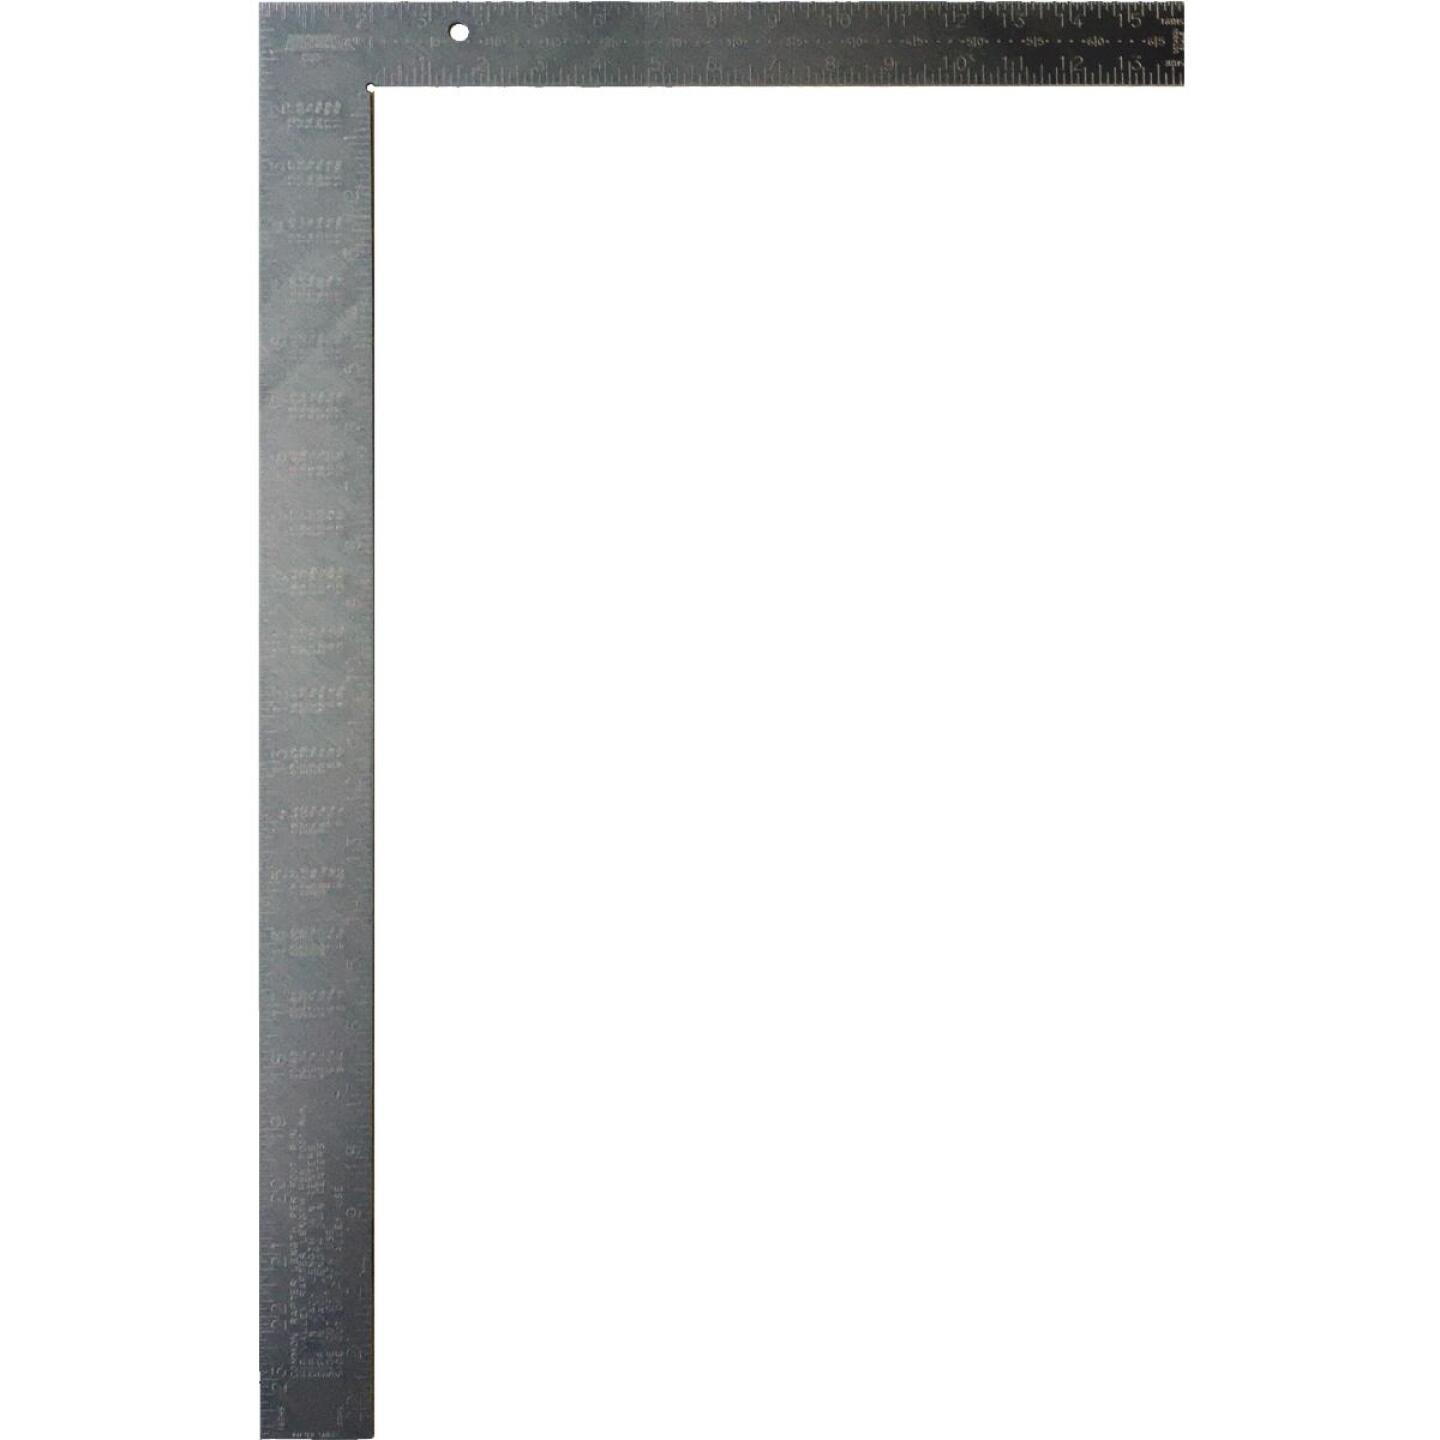 Johnson Level 16 In. x 24 In. Aluminum Carpenter's Square with Tables Image 1